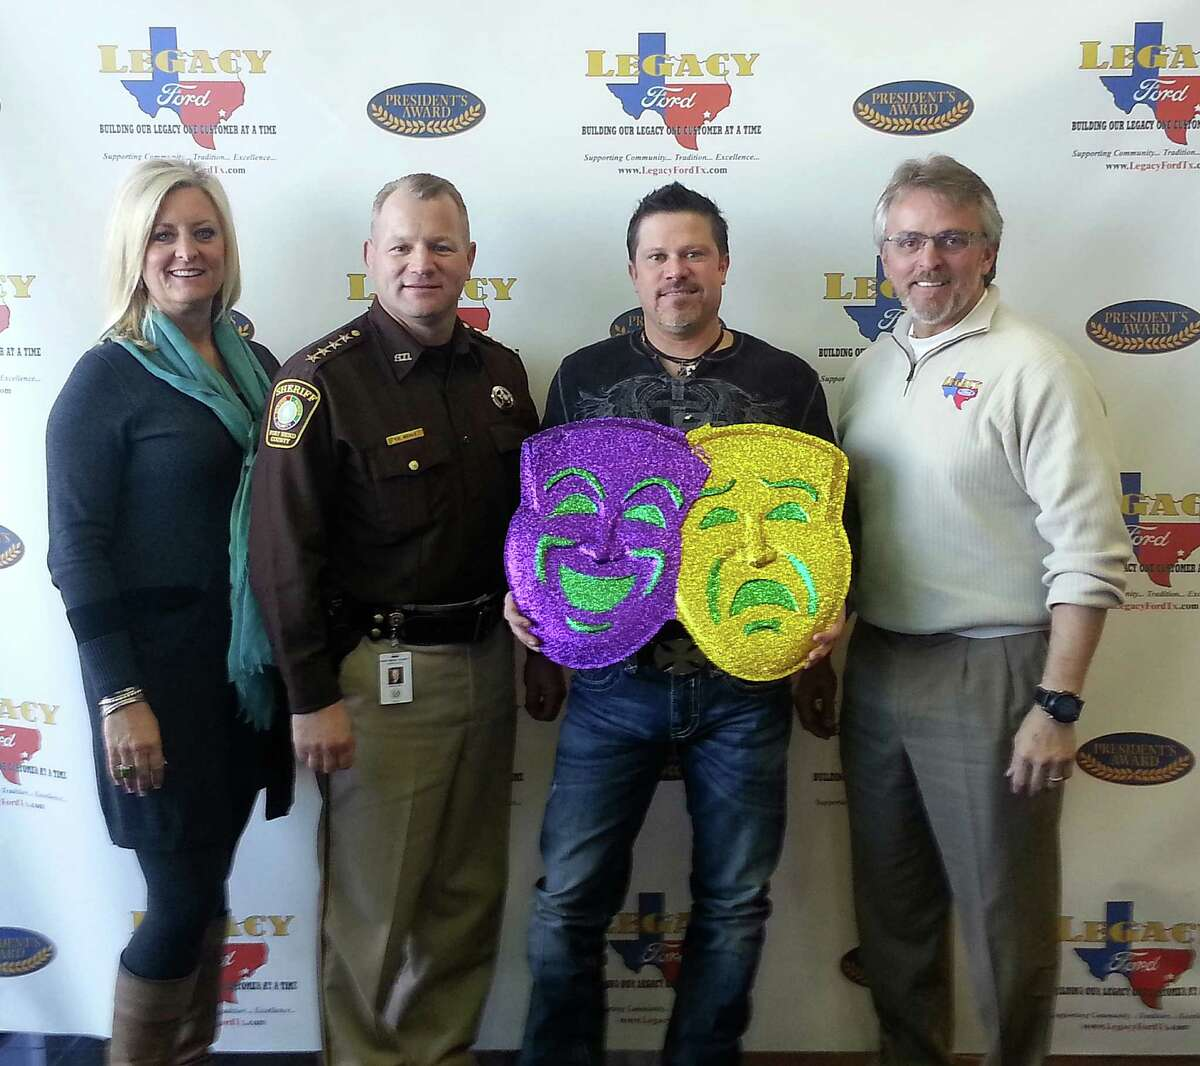 Getting ready for Mardi Gras are Central Fort Bend Chamber President/CEO Shanta Kuhl, left, Fort Bend County Sheriff Troy Nehls, St. Michael's Emergency Room owner Shannon Orsak and Legacy Ford owner Ron Ewer.